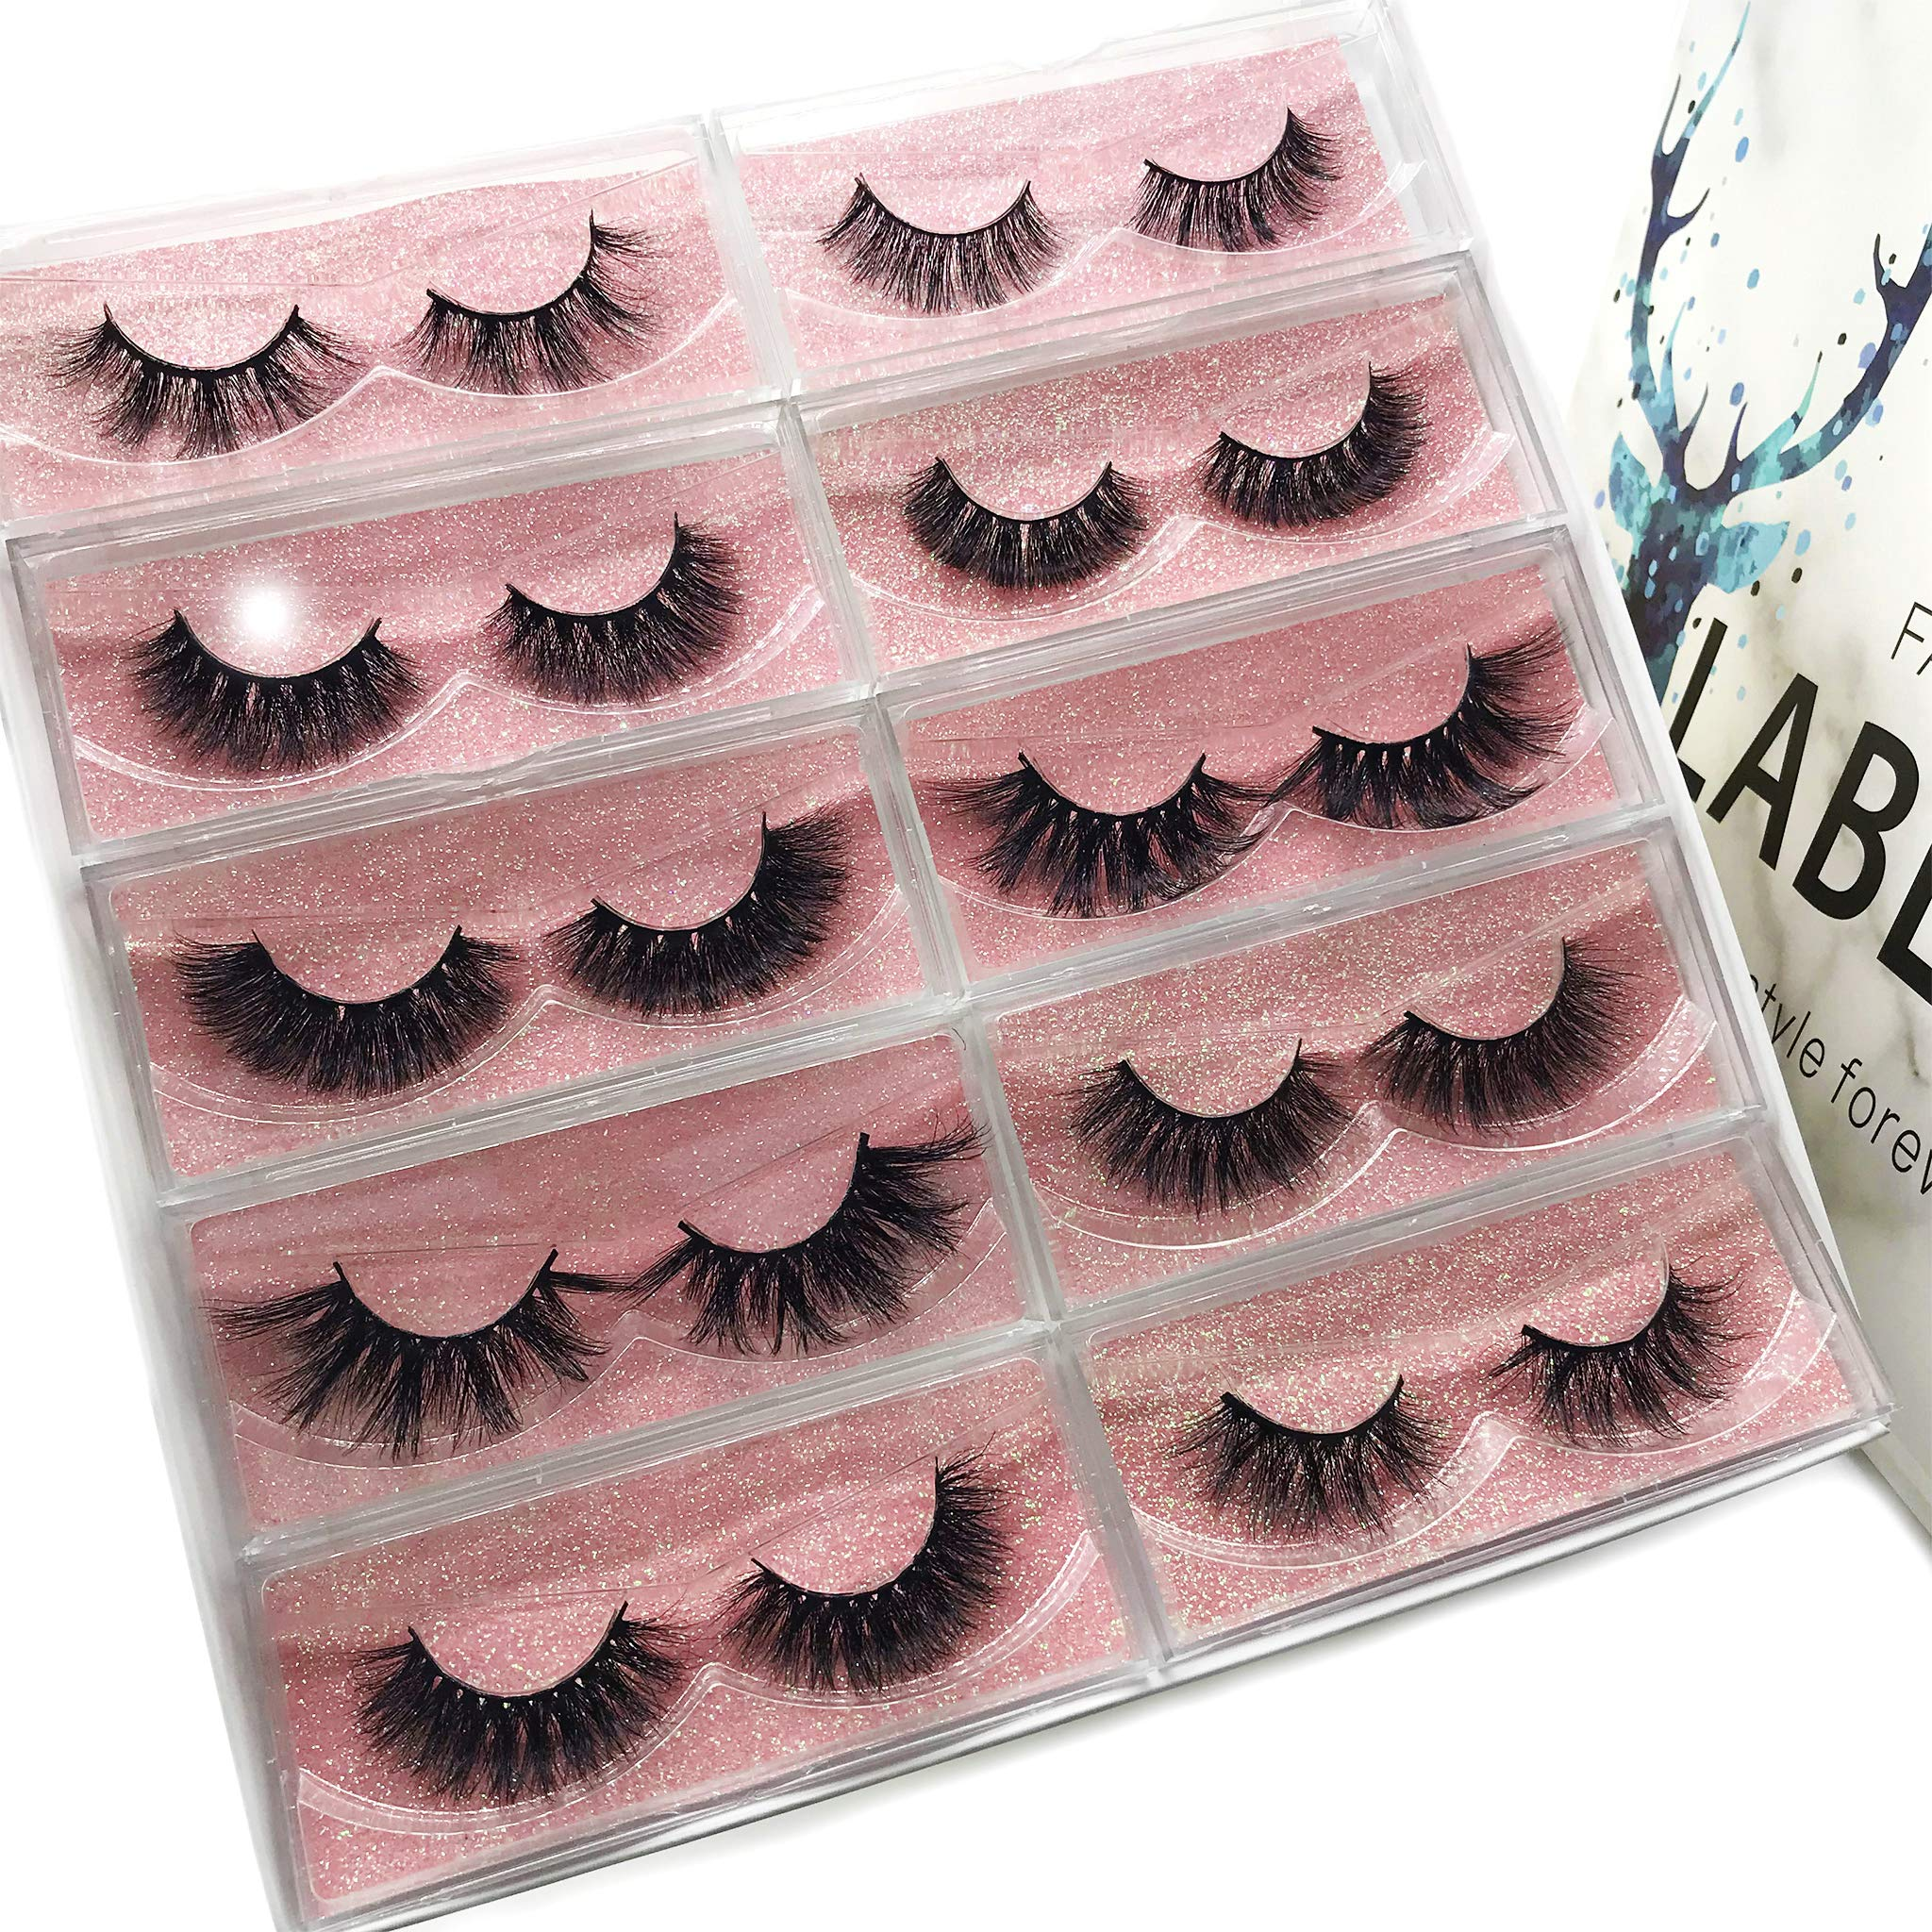 Labeh Mink Eyelashes 3D Mink Fur False Eyelashes Reusable Handmade Natural Lashes Fake Eyelashes Easy to Apply (10 different styles/package) by LAB·EH